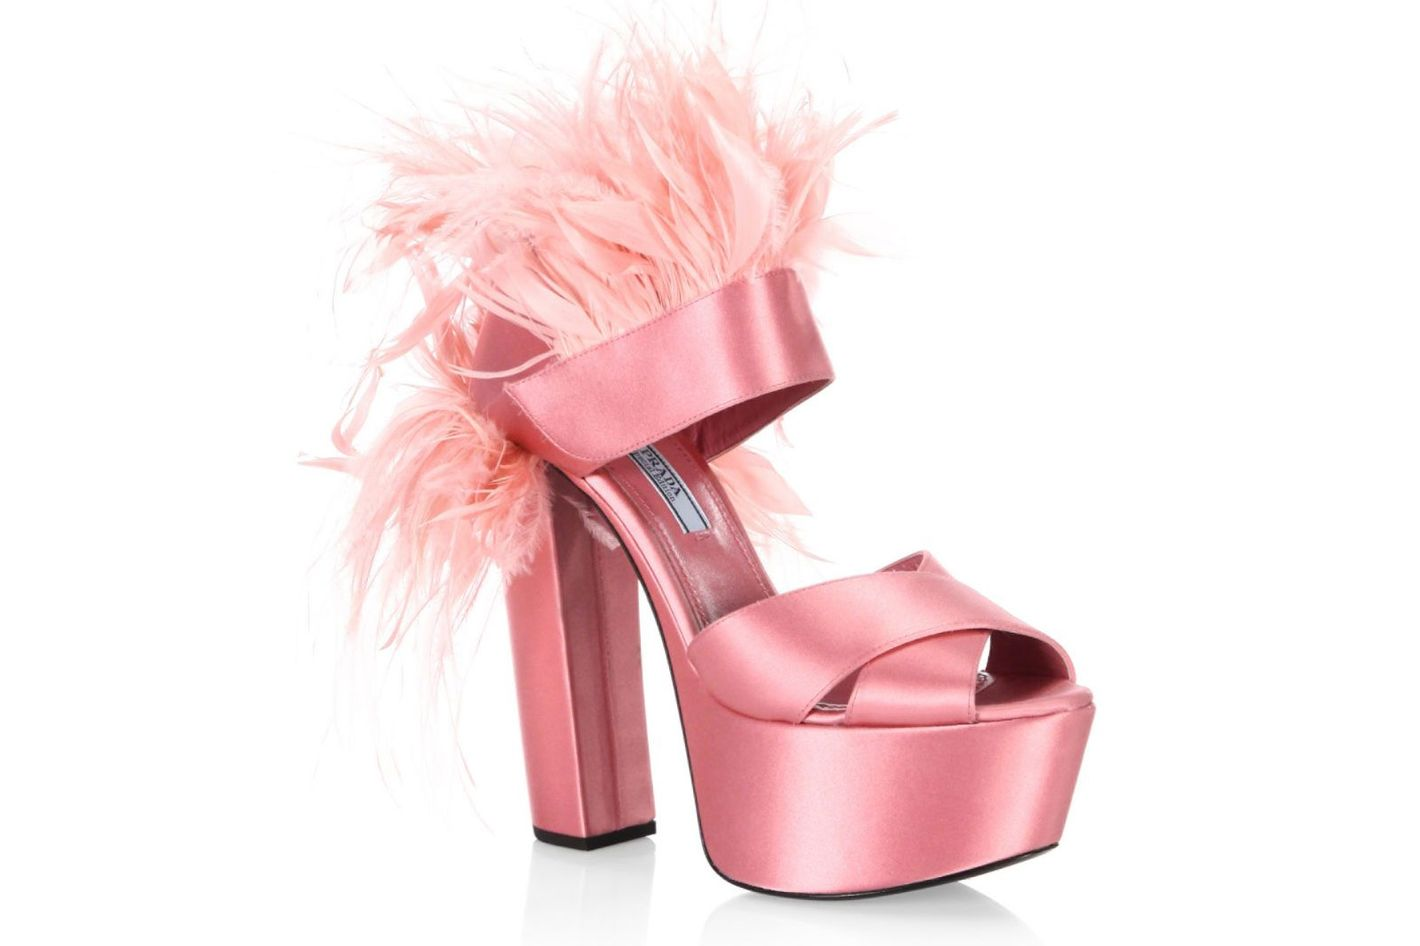 Prada Feather-Trimmed Satin Platform Sandals